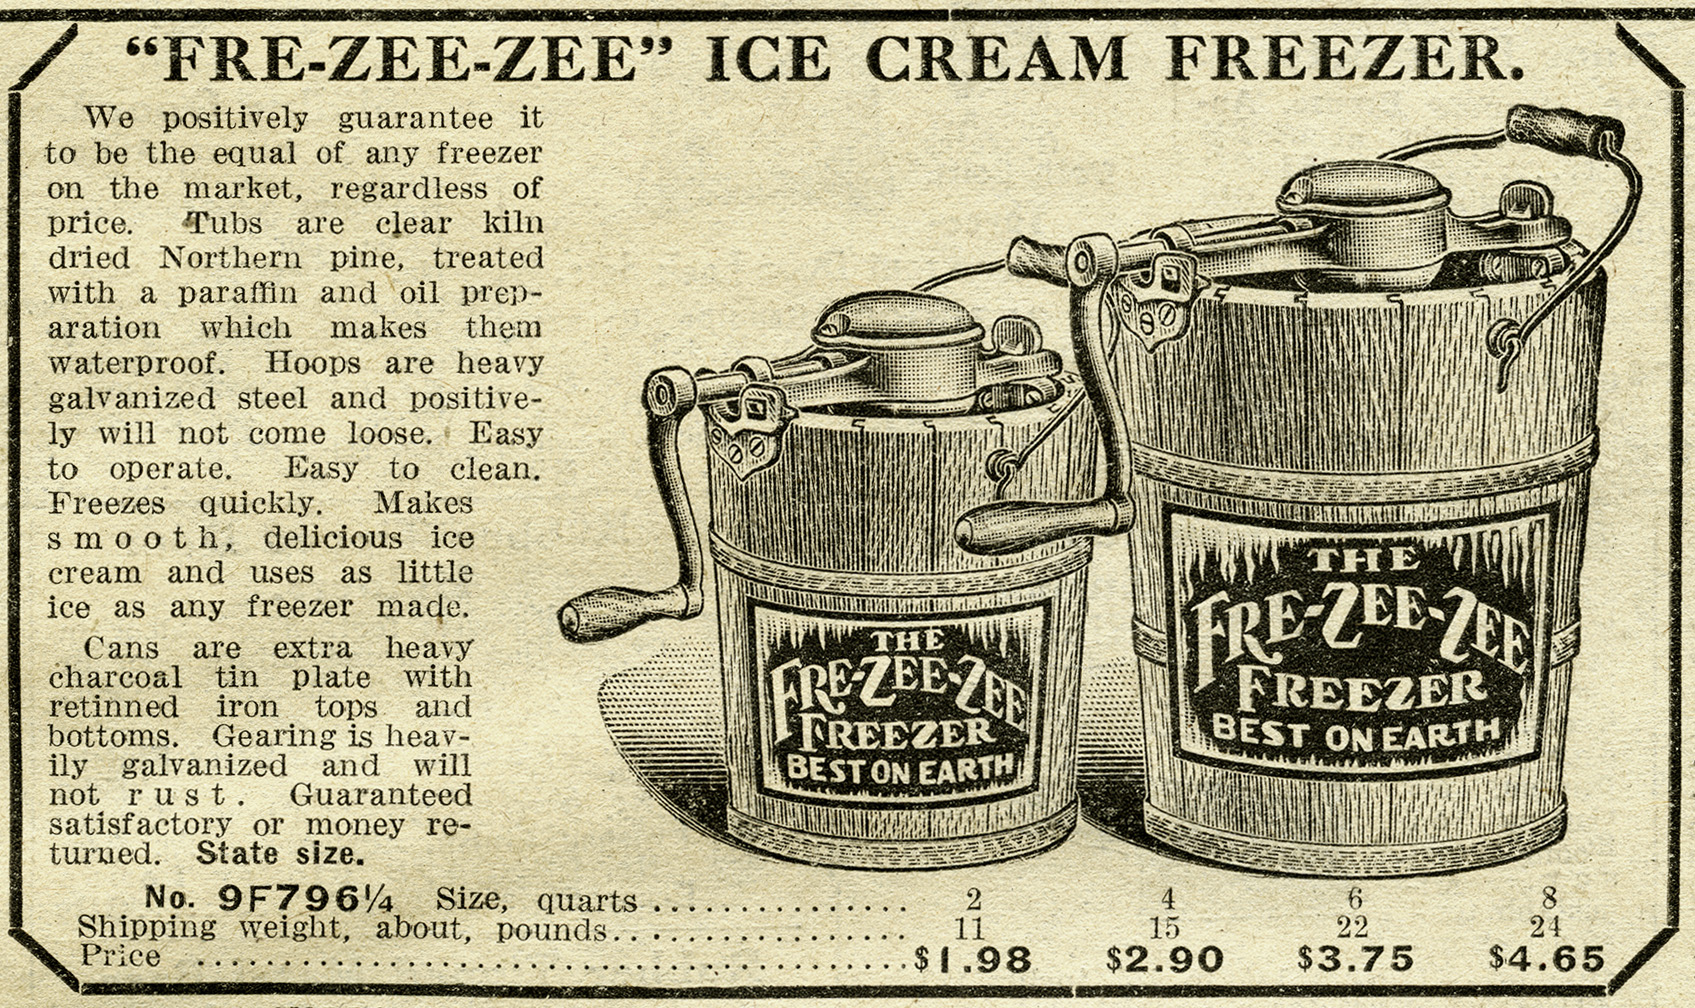 REFRIGERATION through the ages - The ad is from the 1916 Sears Roebuck and Co. winter catalogue.